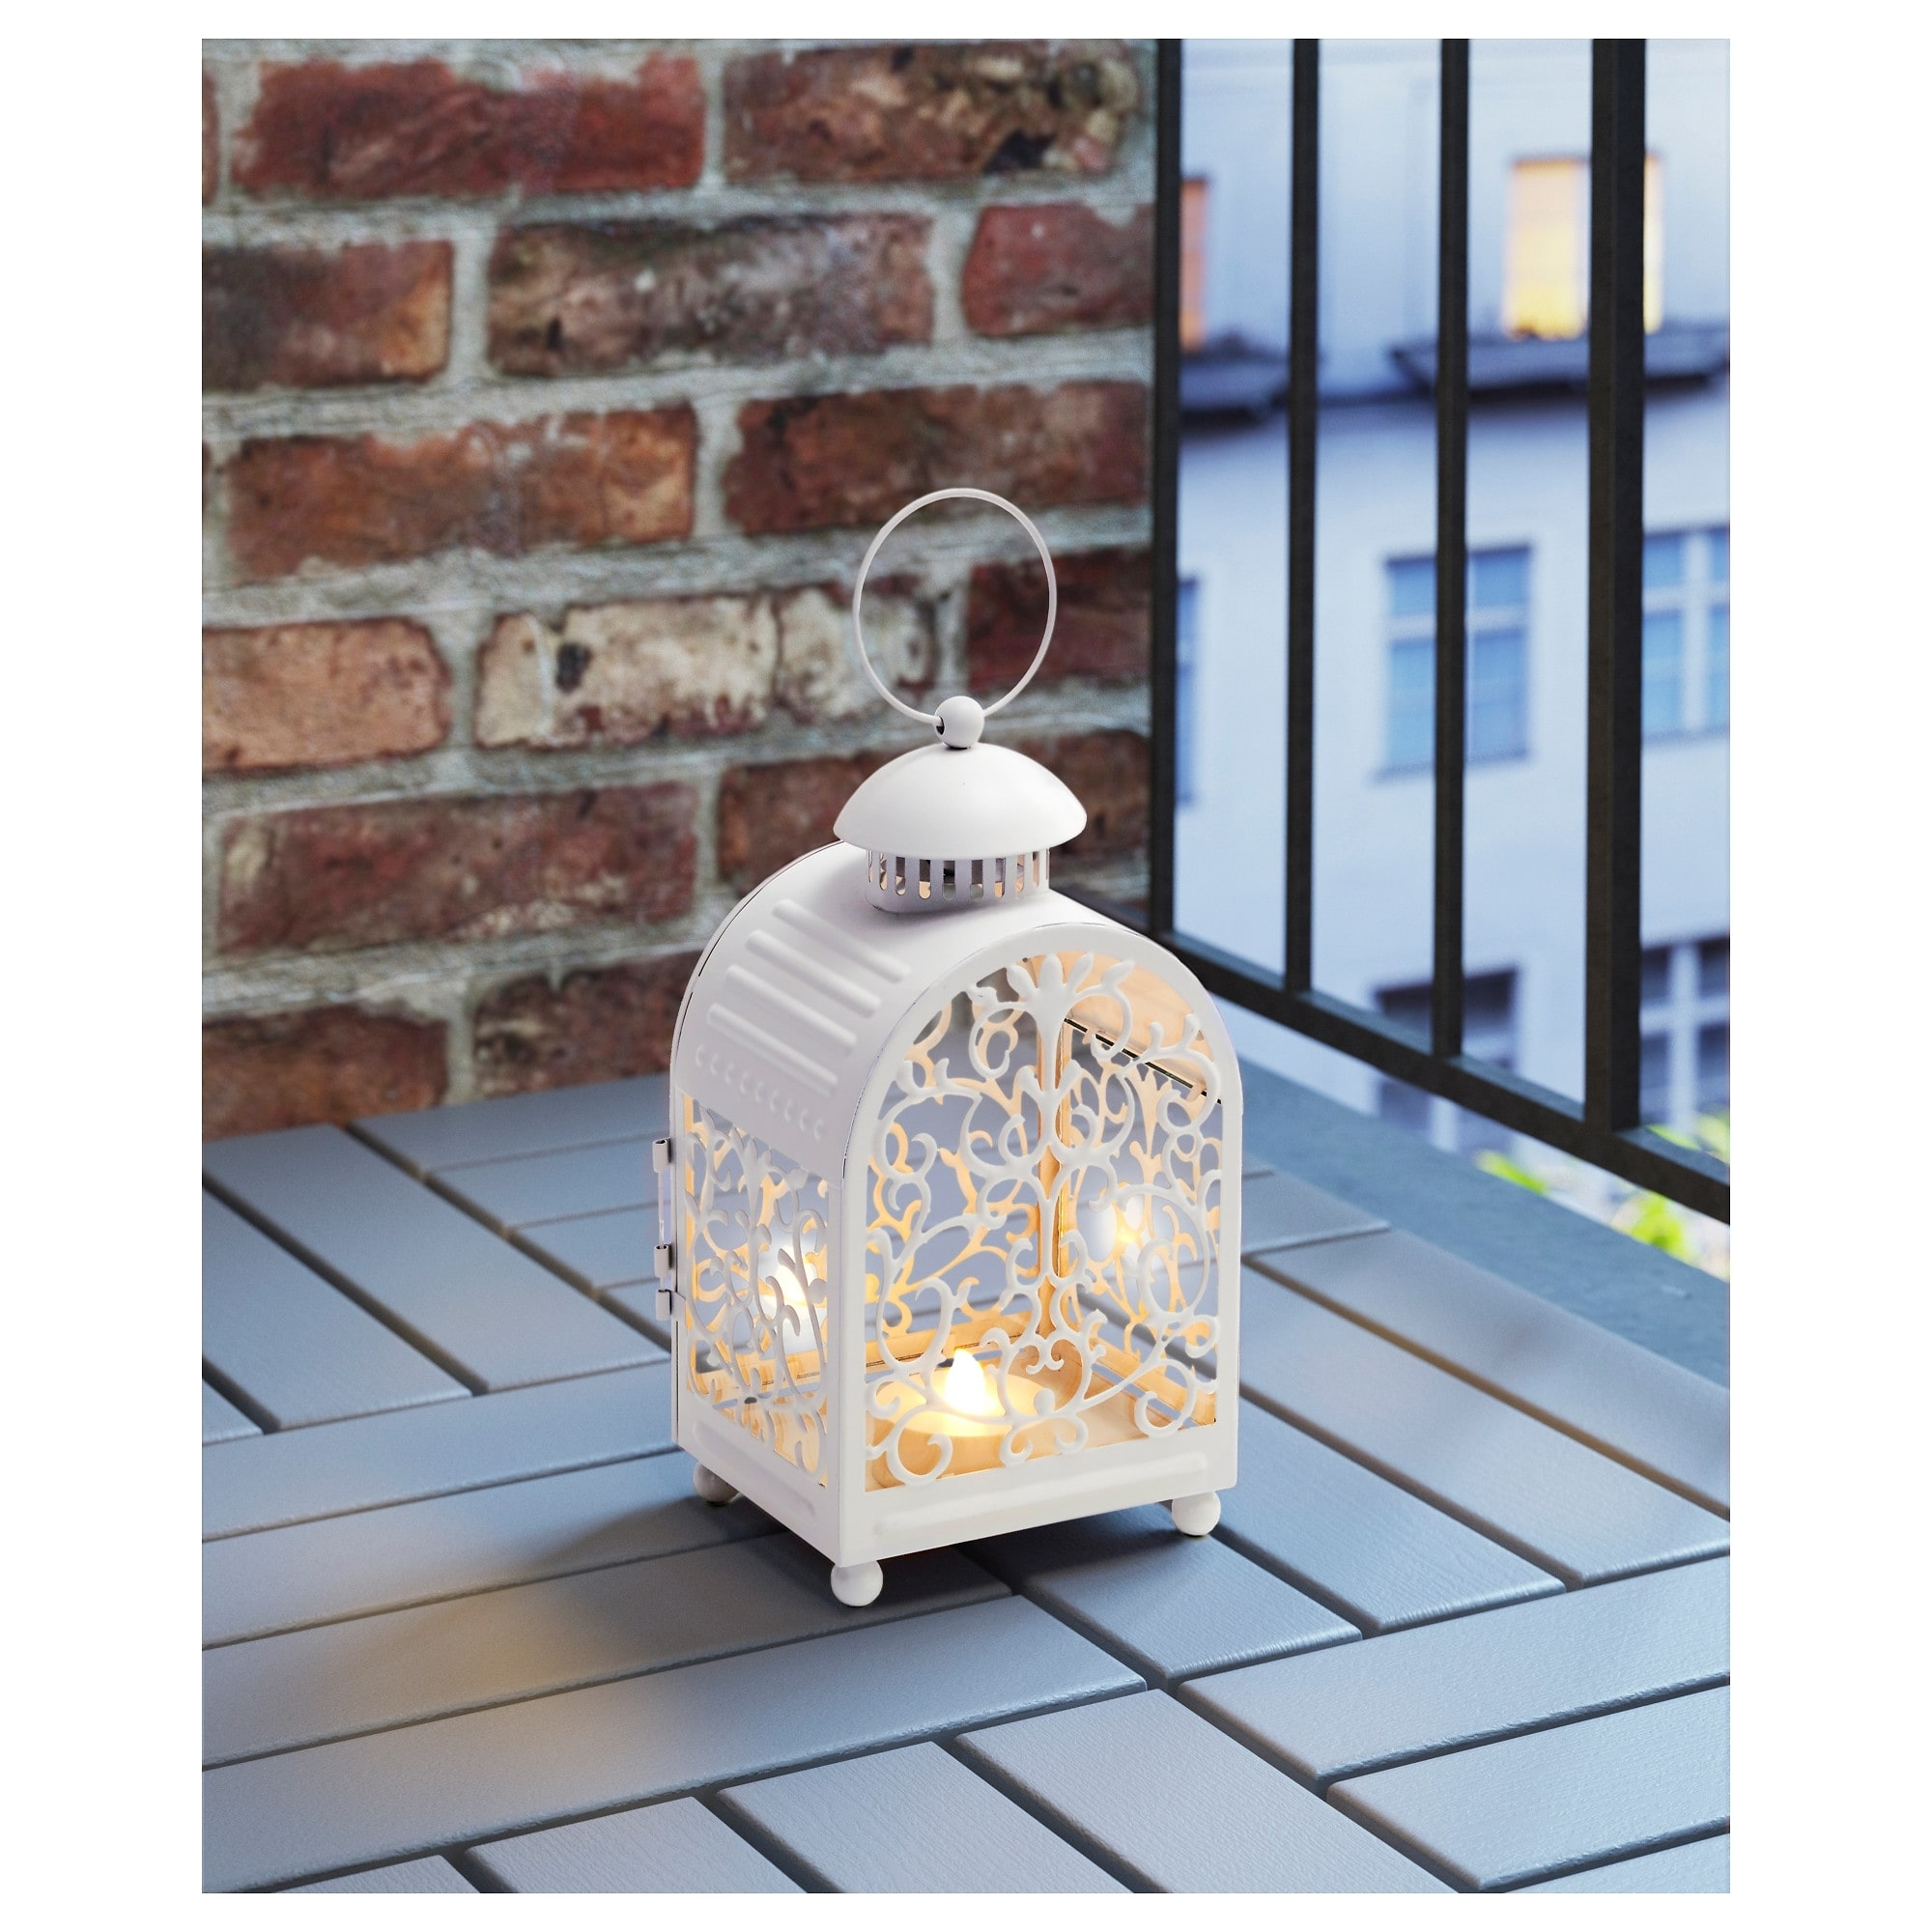 Outdoor Metal Lanterns For Candles Regarding 2018 Gottgöra Lantern For Candle In Metal Cup In/outdoor White 26 Cm – Ikea (View 14 of 20)